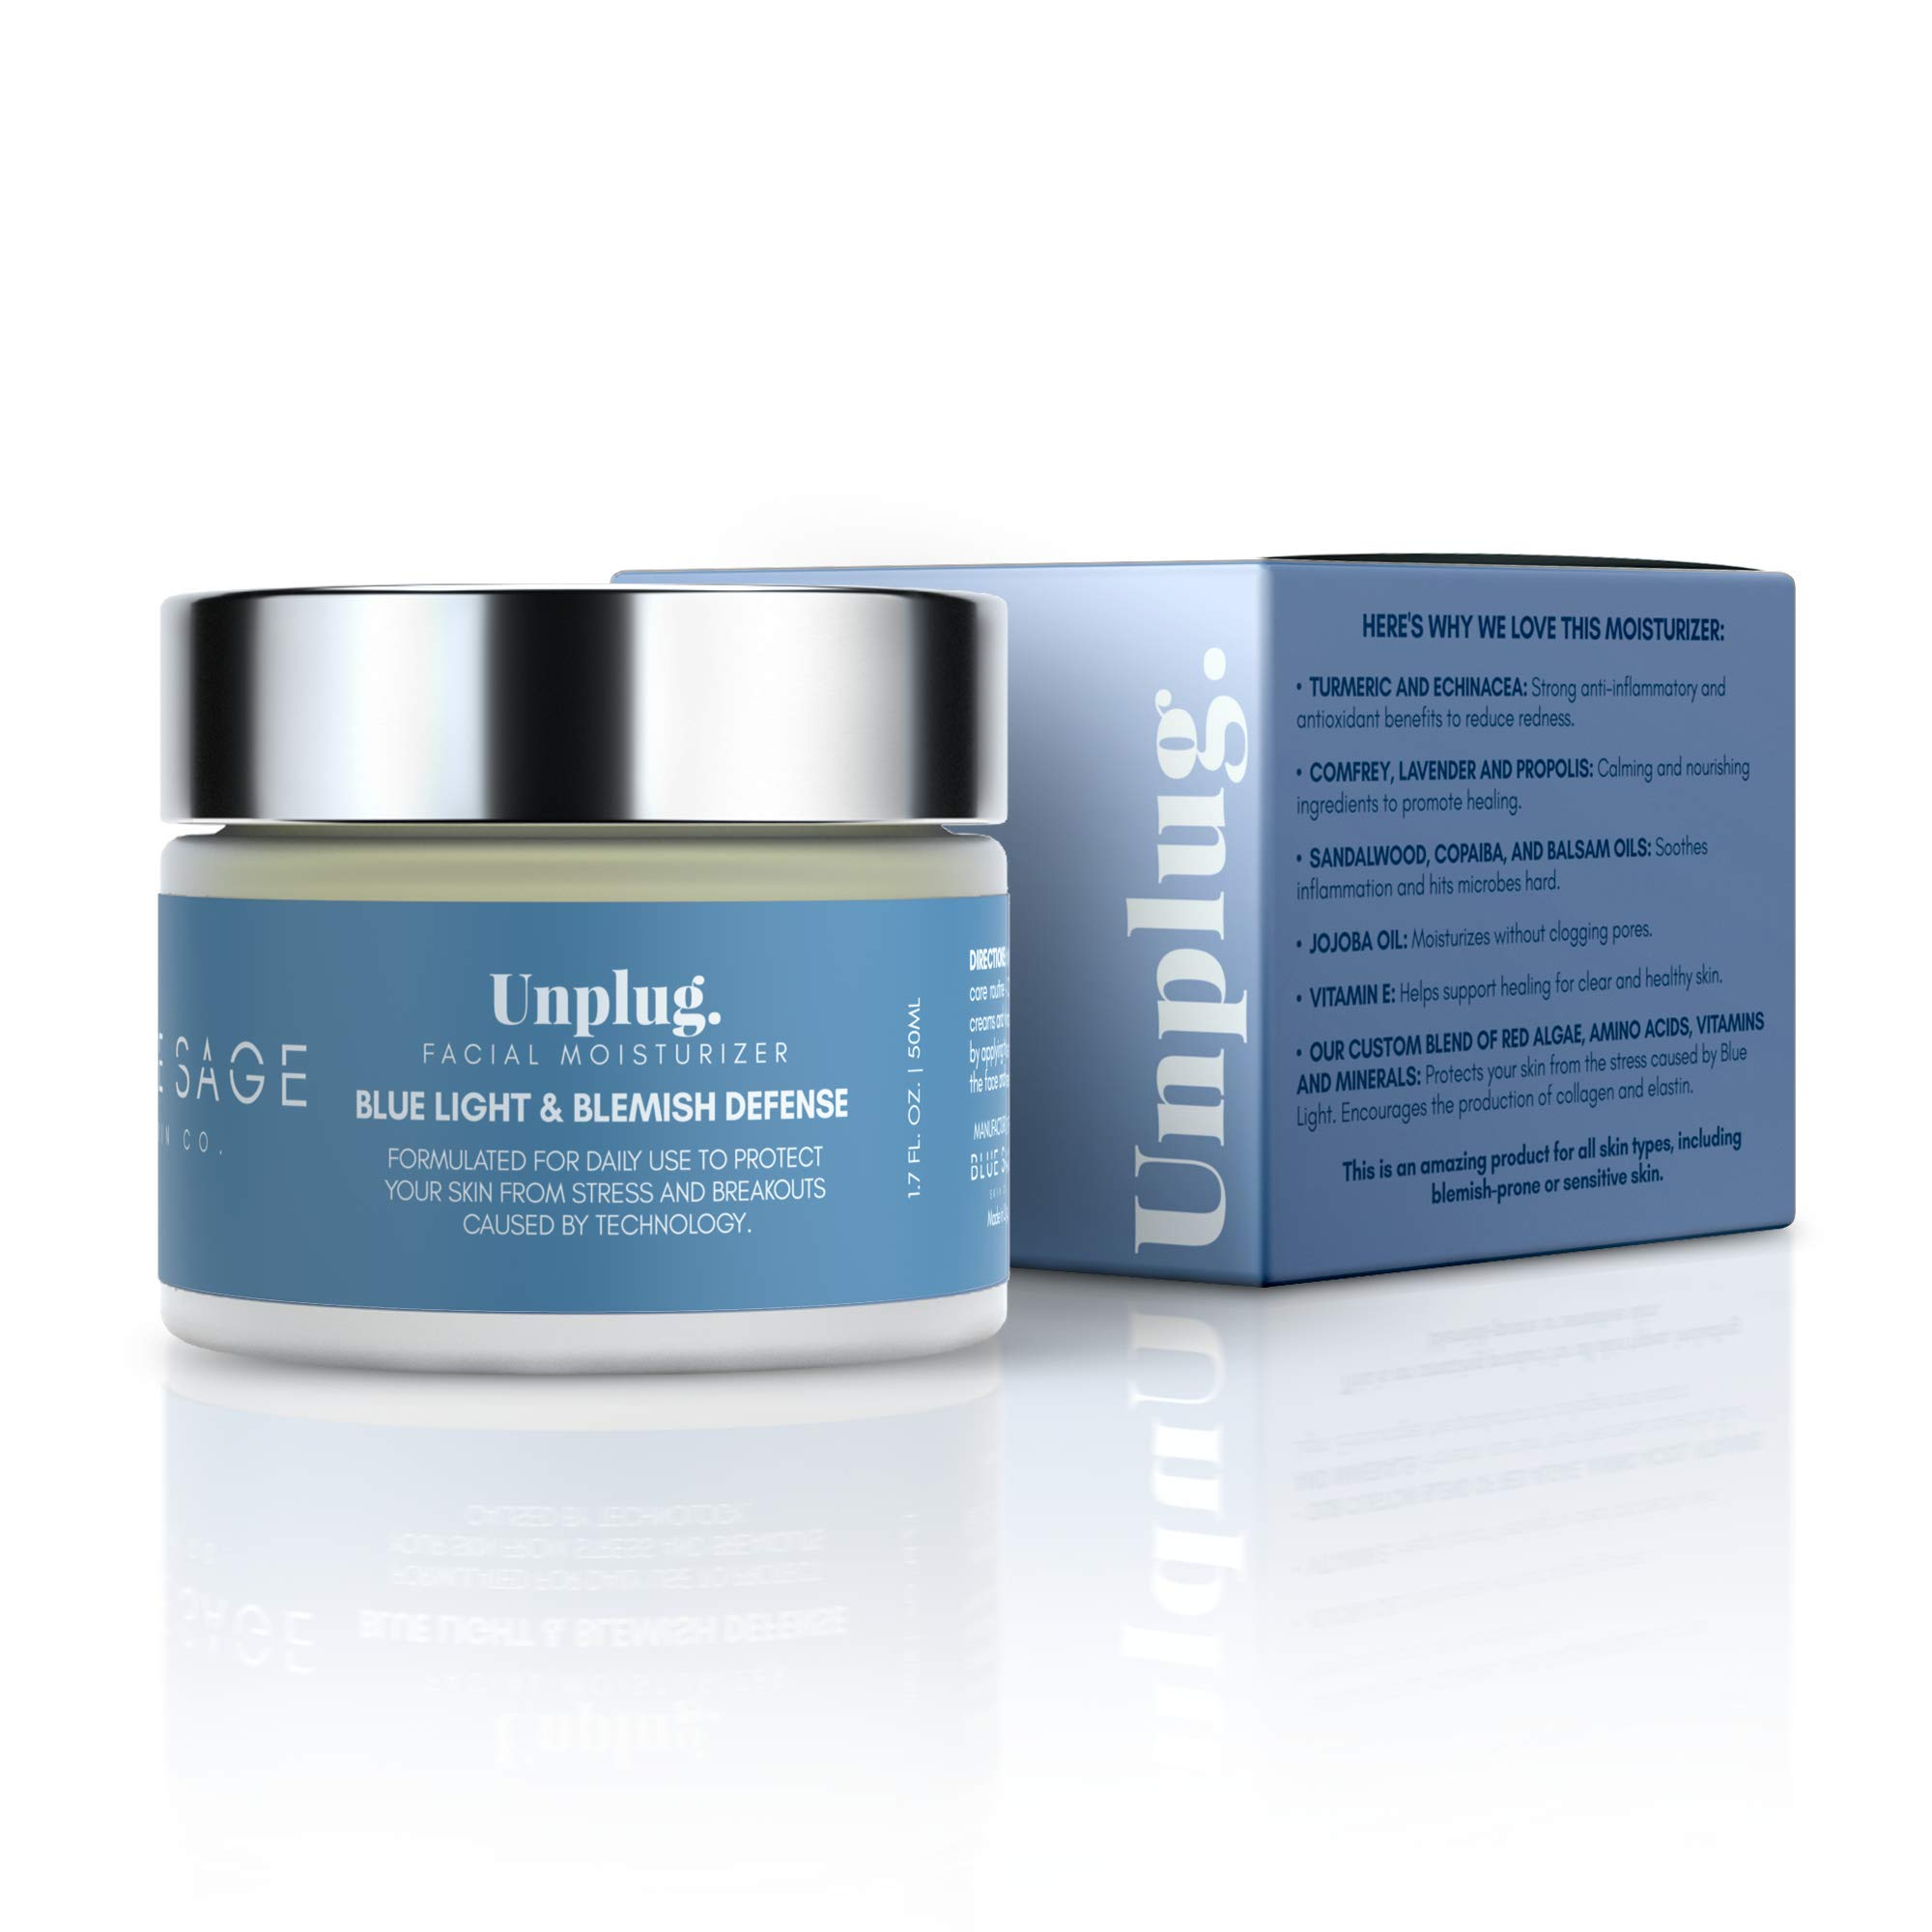 Blue Sage Blue Light + Blemish Defense Daily Facial Moisturizer | Natural Anti Acne and Anti Aging Cream with Turmeric Protects Skin From Harmful Rays Caused by the Sun and Technology